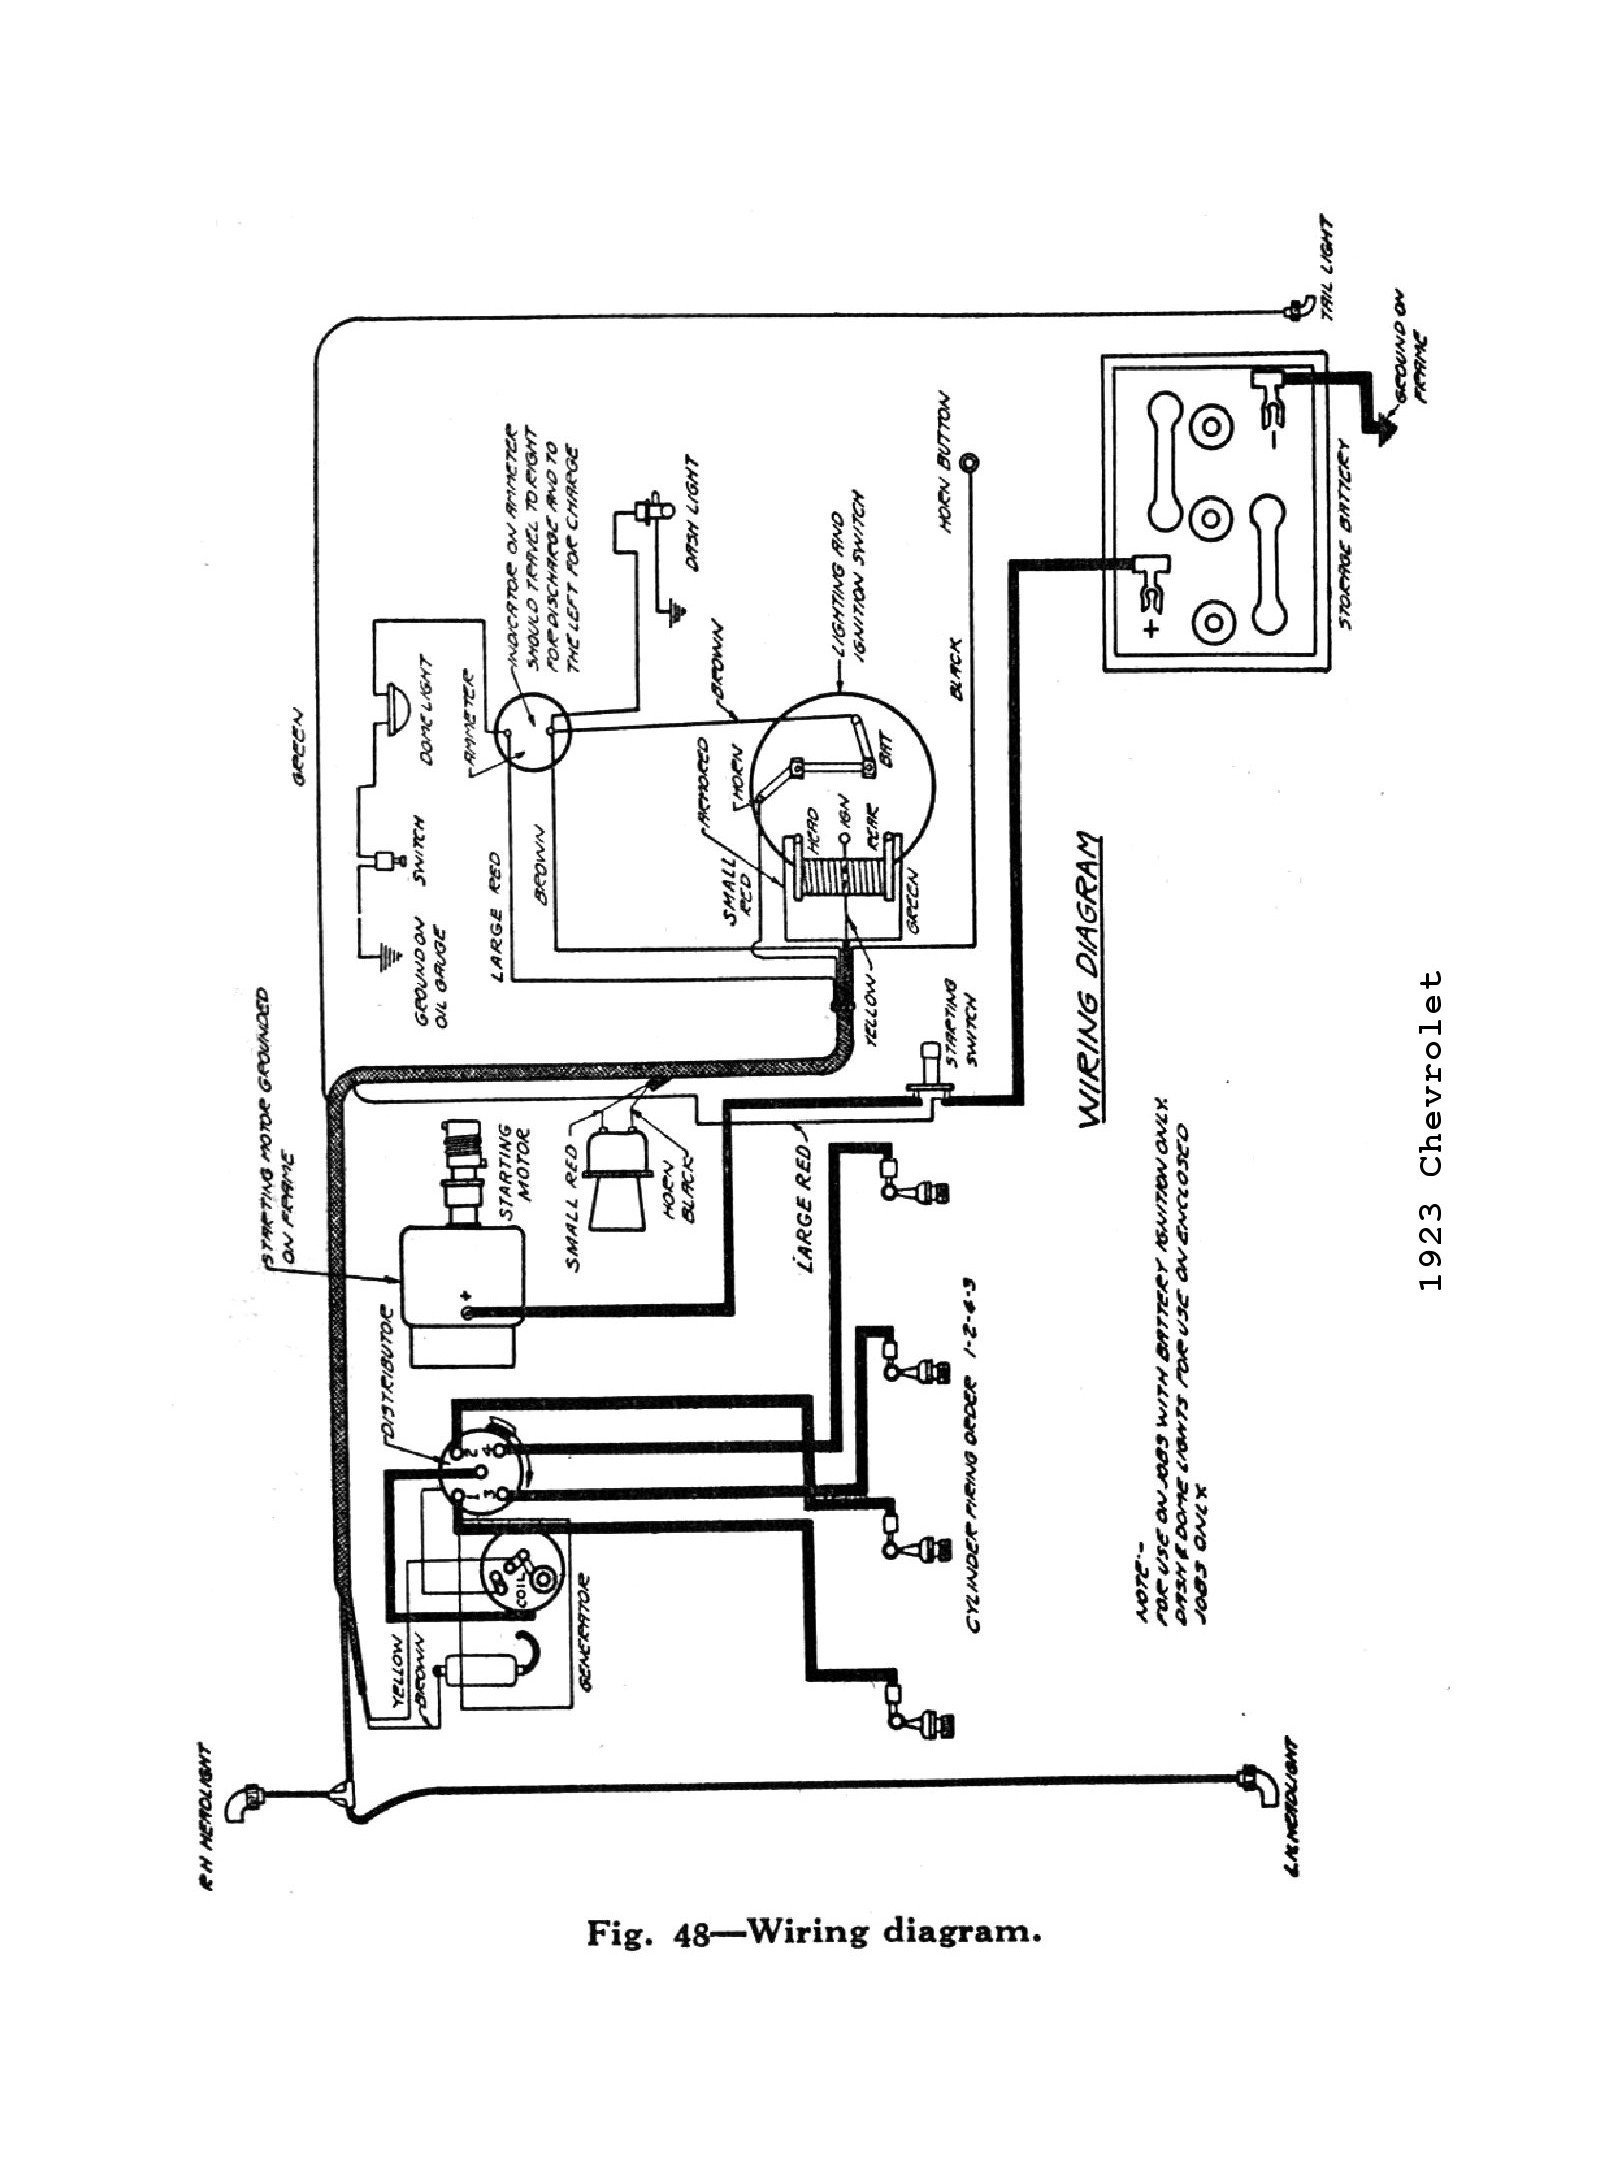 350 Chevy Engine Diagram My Wiring Diagrams Of